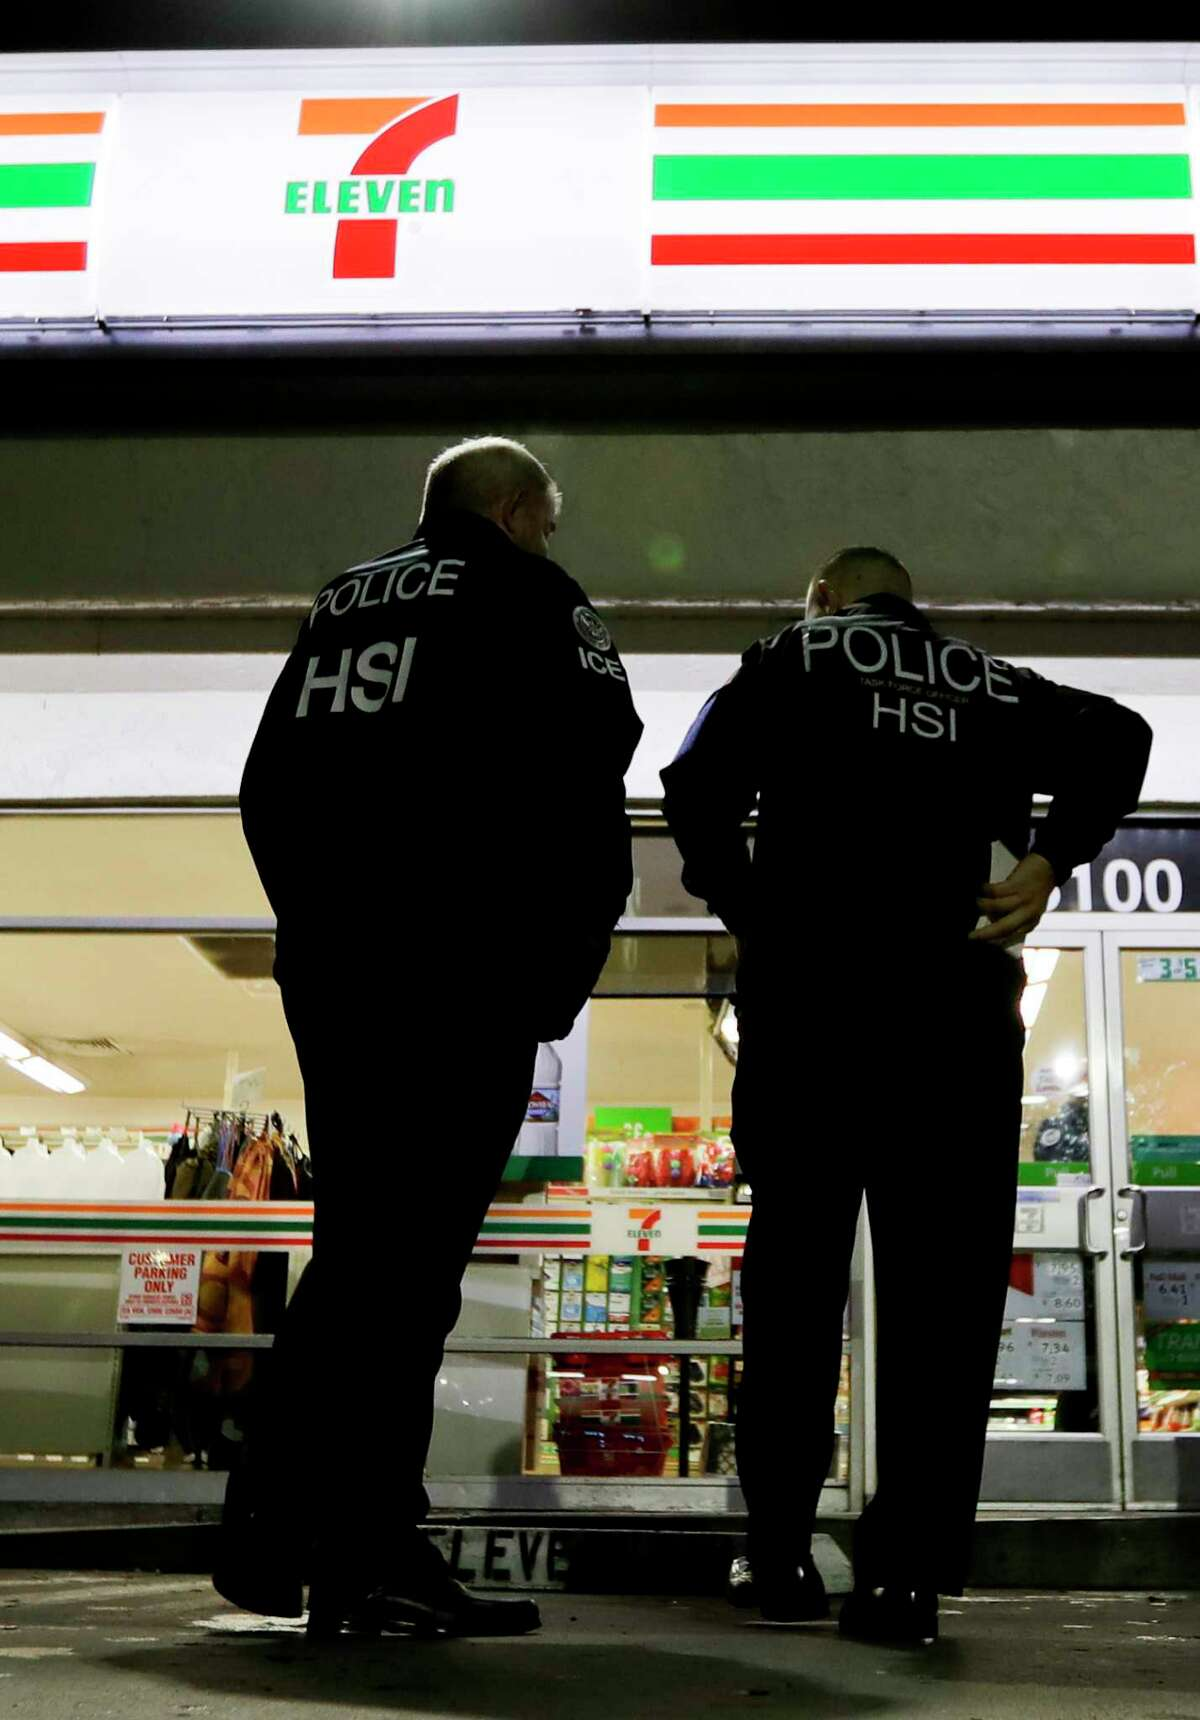 U.S. Immigration and Customs Enforcement agents serve an employment audit notice at a 7-Eleven in Los Angeles on Jan. 10.